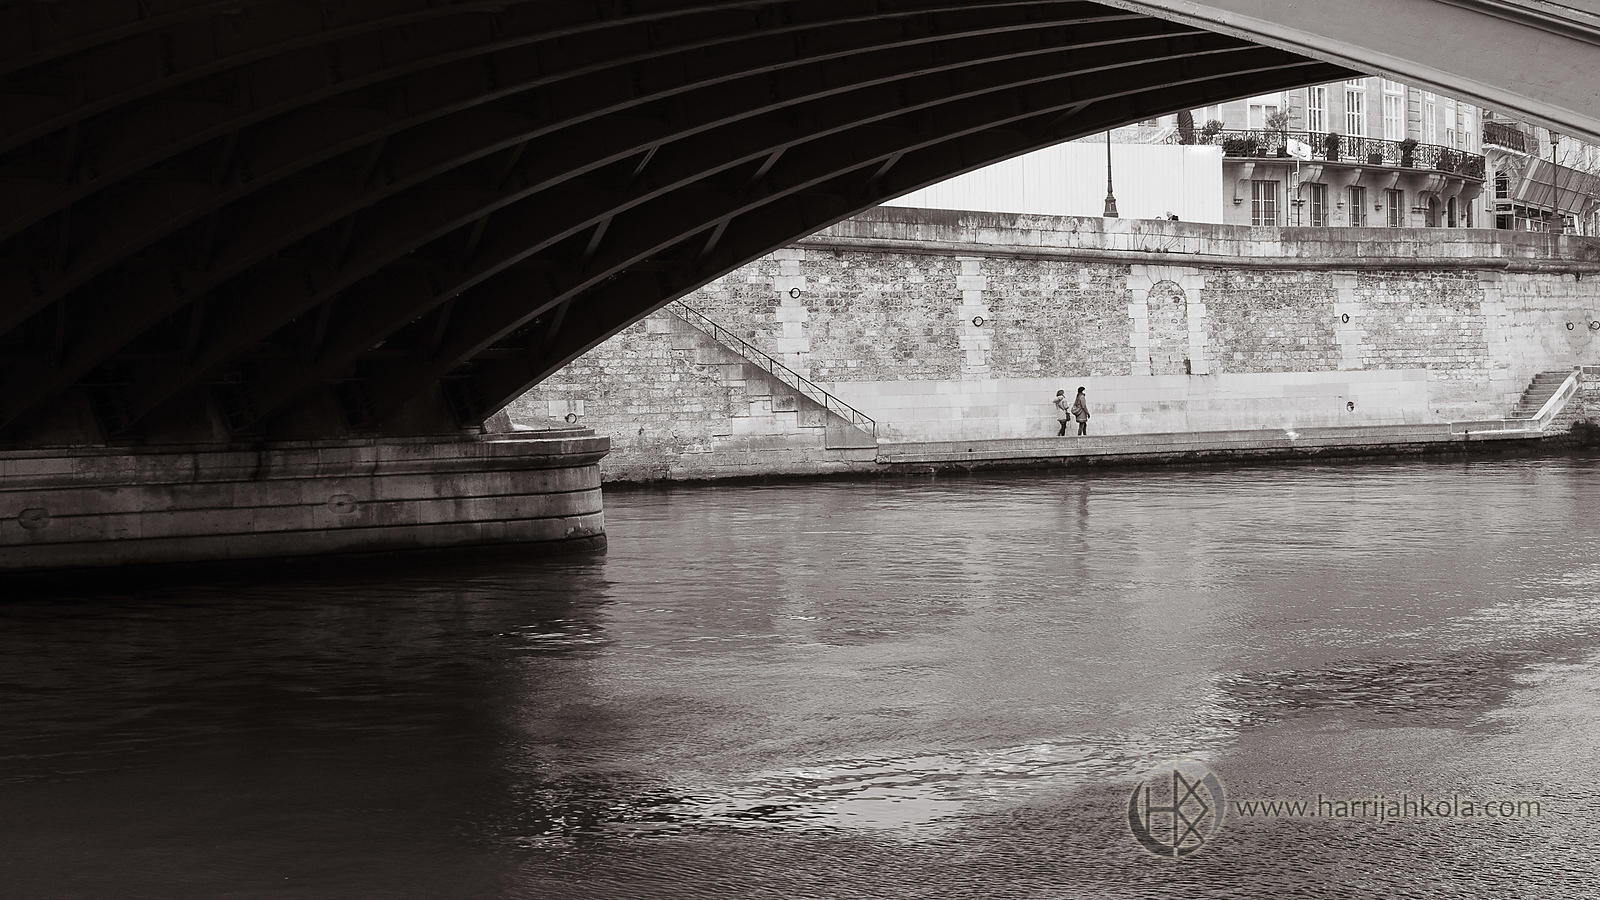 France - Paris (Pont de Sully - Flow)